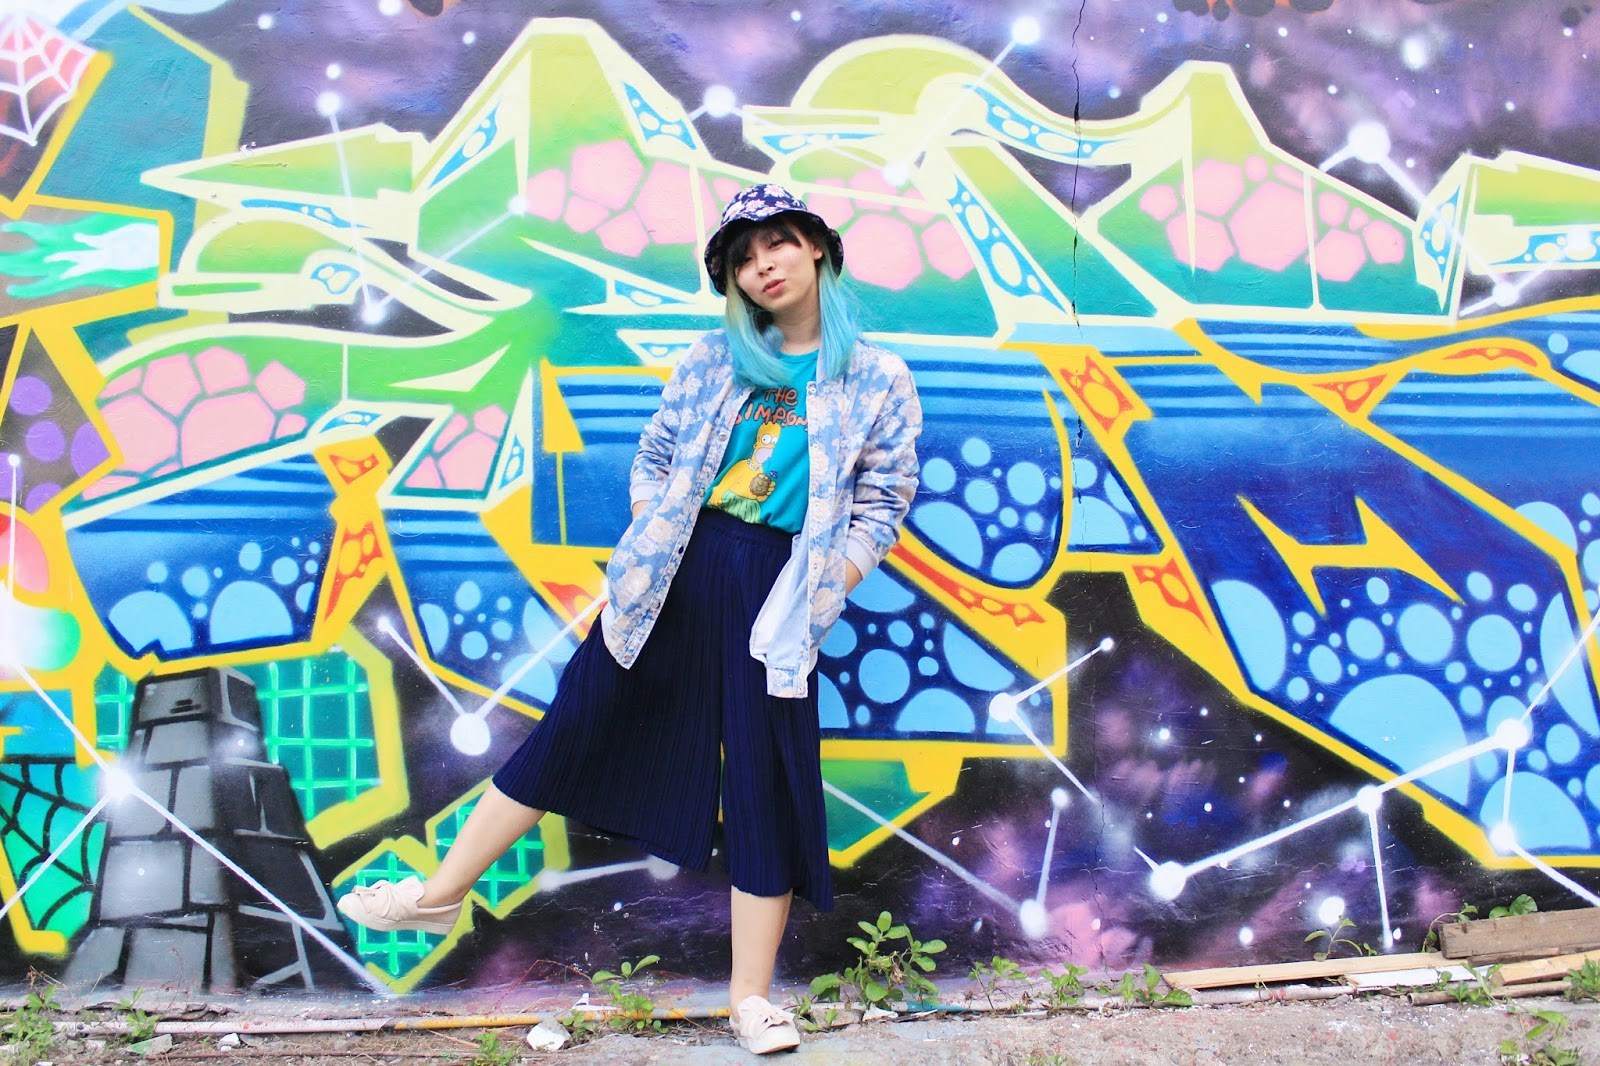 Graffiti Wall outfit | www.bigdreamerblog.com